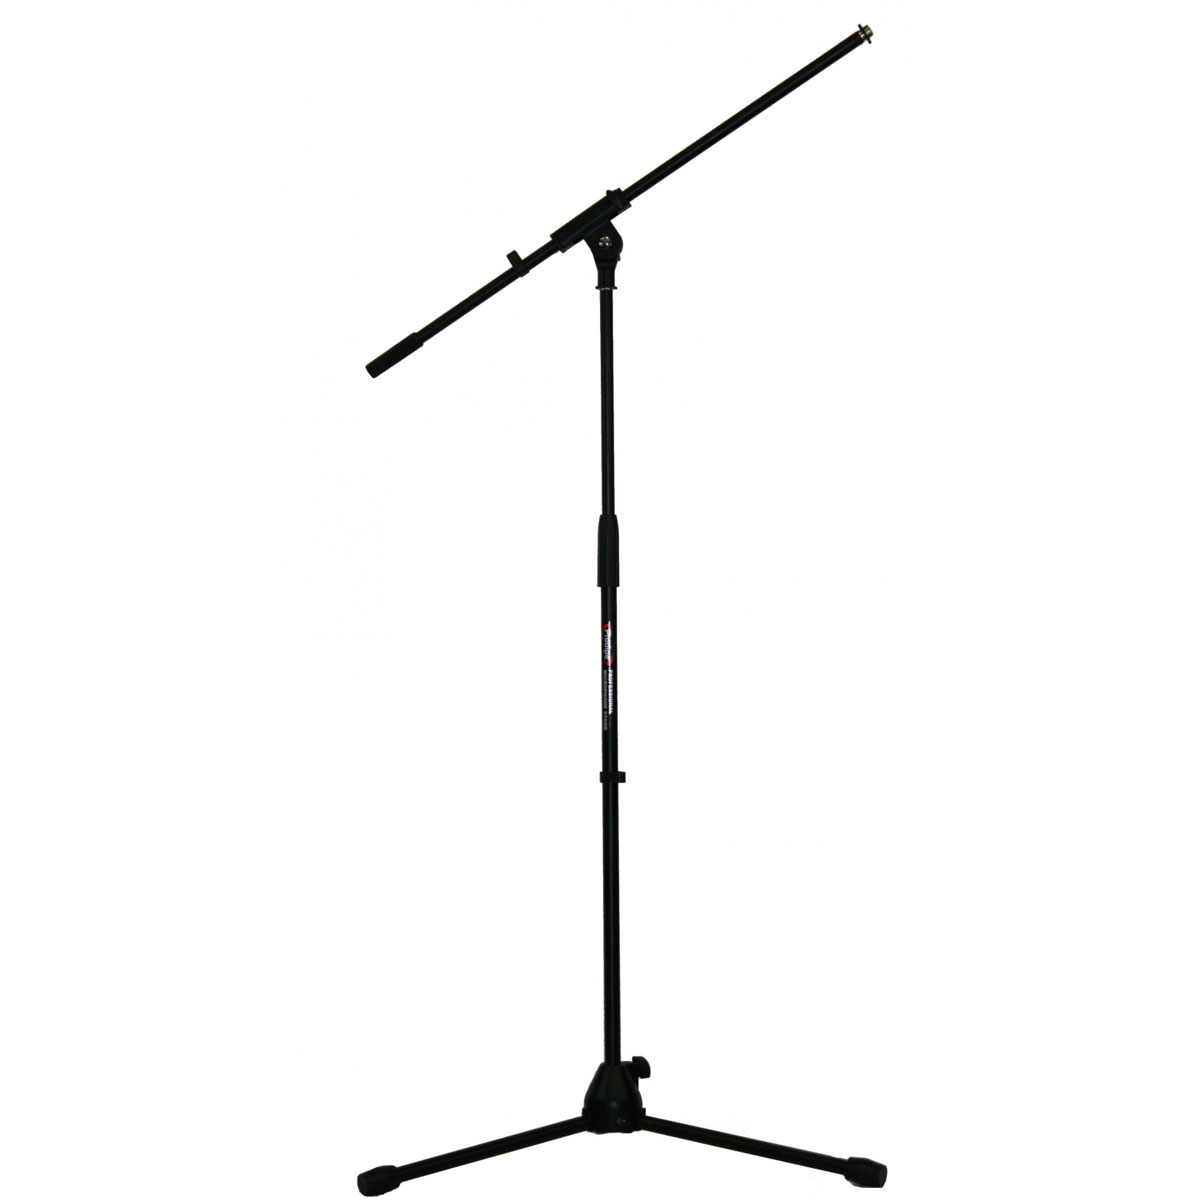 prodipe pied perche ajustable pour microphone accessoires home studio prodipe sur. Black Bedroom Furniture Sets. Home Design Ideas